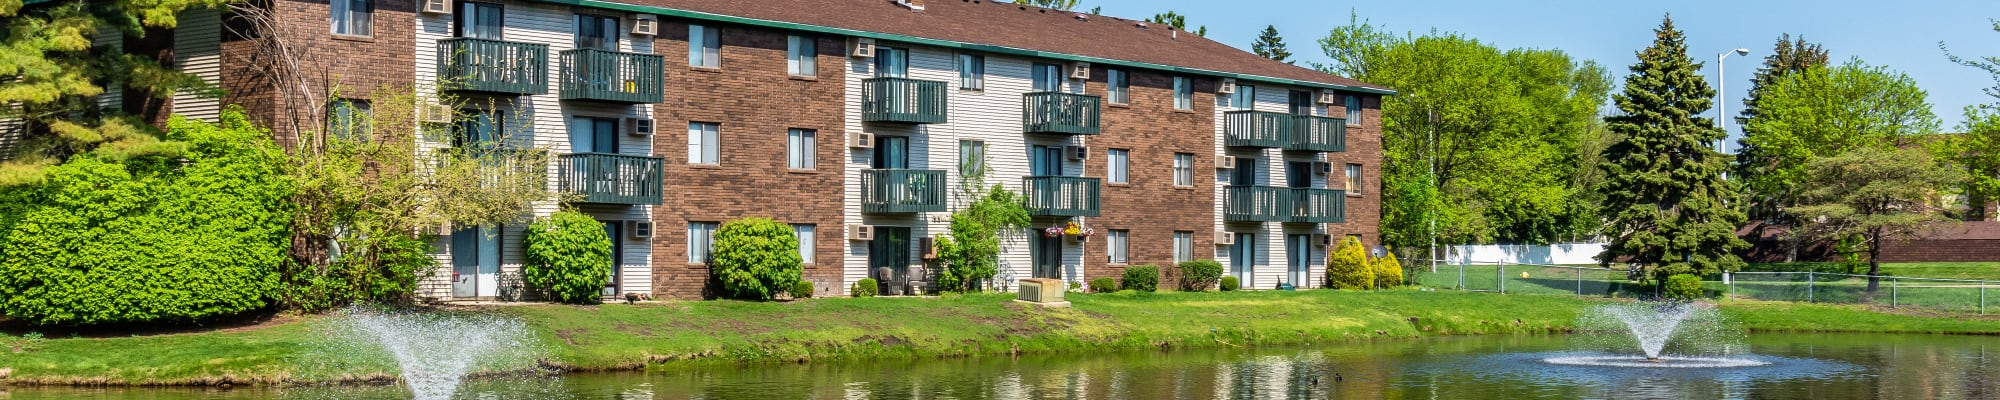 Maintenance Request at Oldebrook Apartments in Wyoming, Michigan